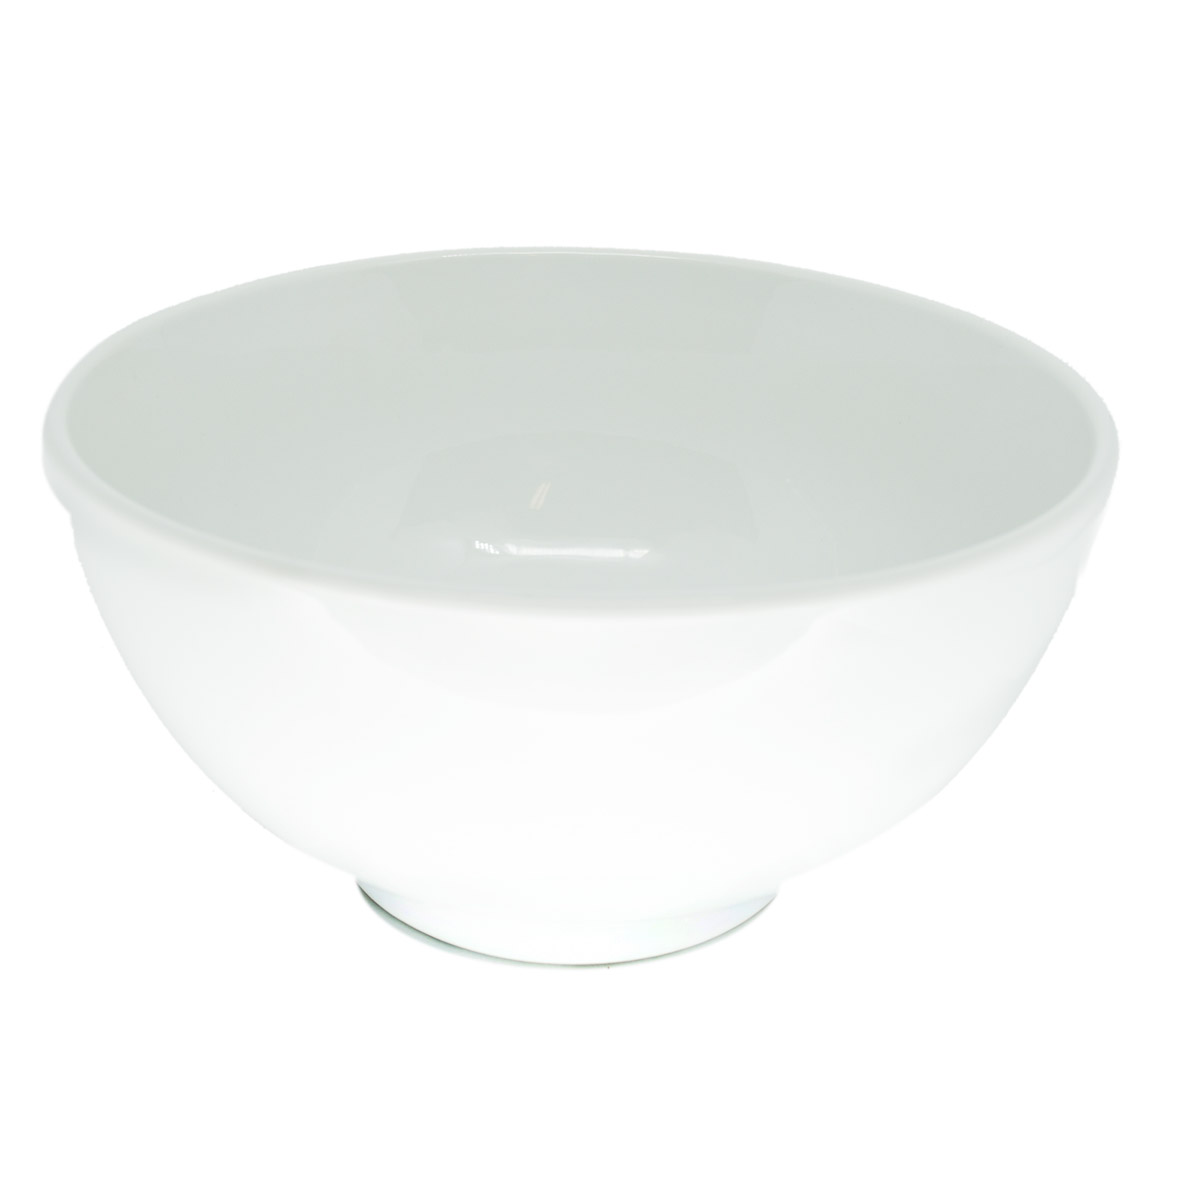 Travessa de Porcelana Redonda Bowl s/Borda 25x13,5